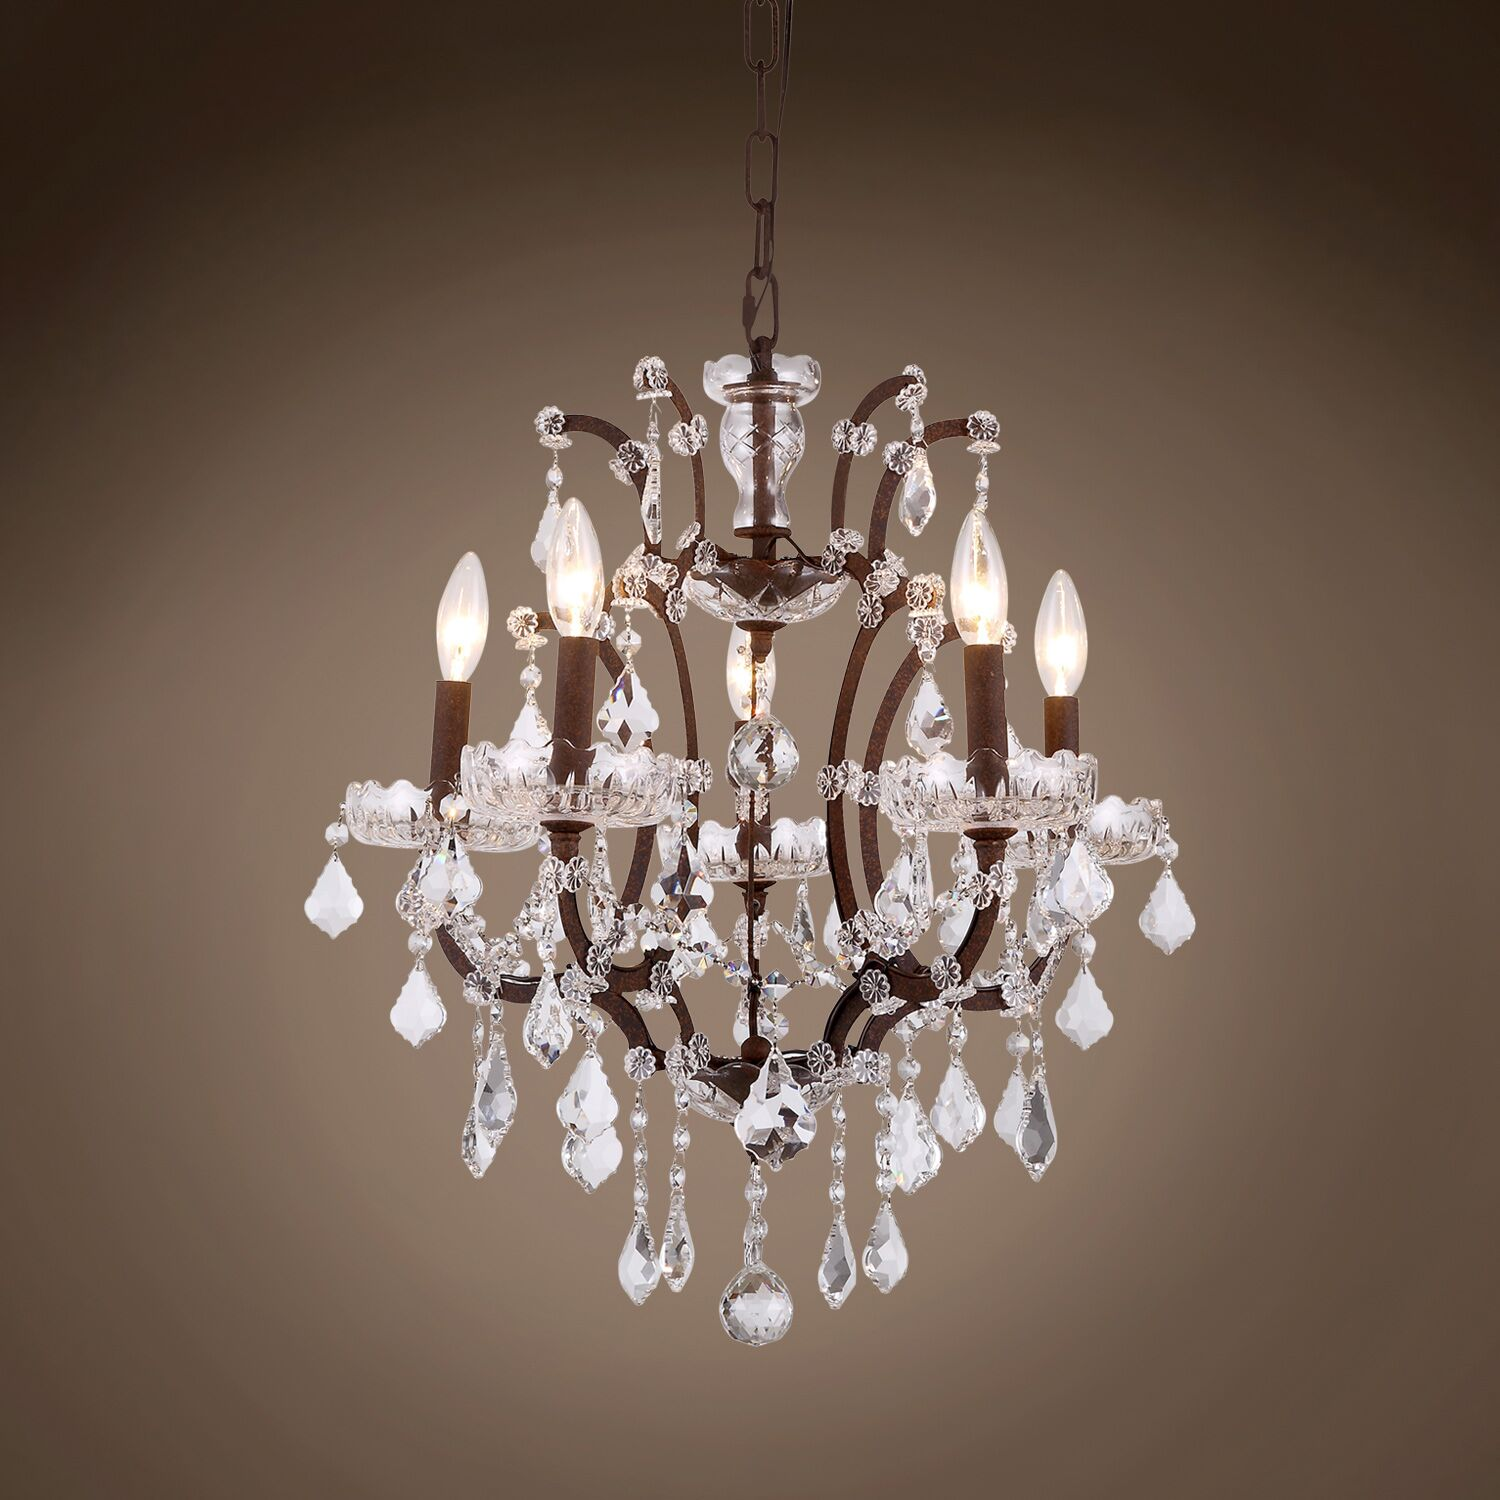 Chantrell 5-Light Chandelier Crystal Color: Clear, Finish: Rustic Iron